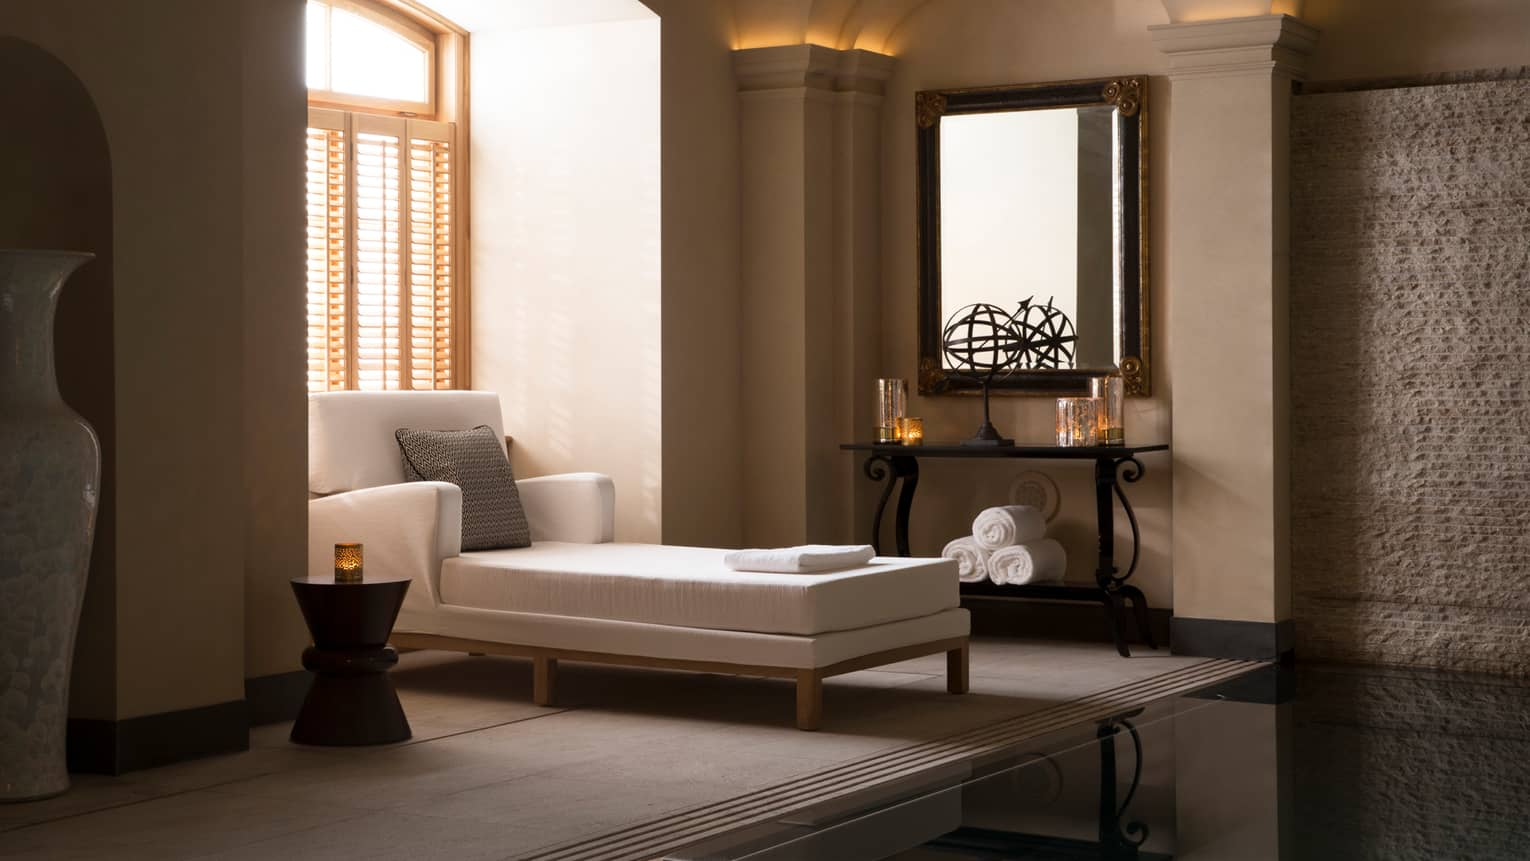 Long white chaise with accent pillow under sunny spa window with shutters, candles on shelves in room